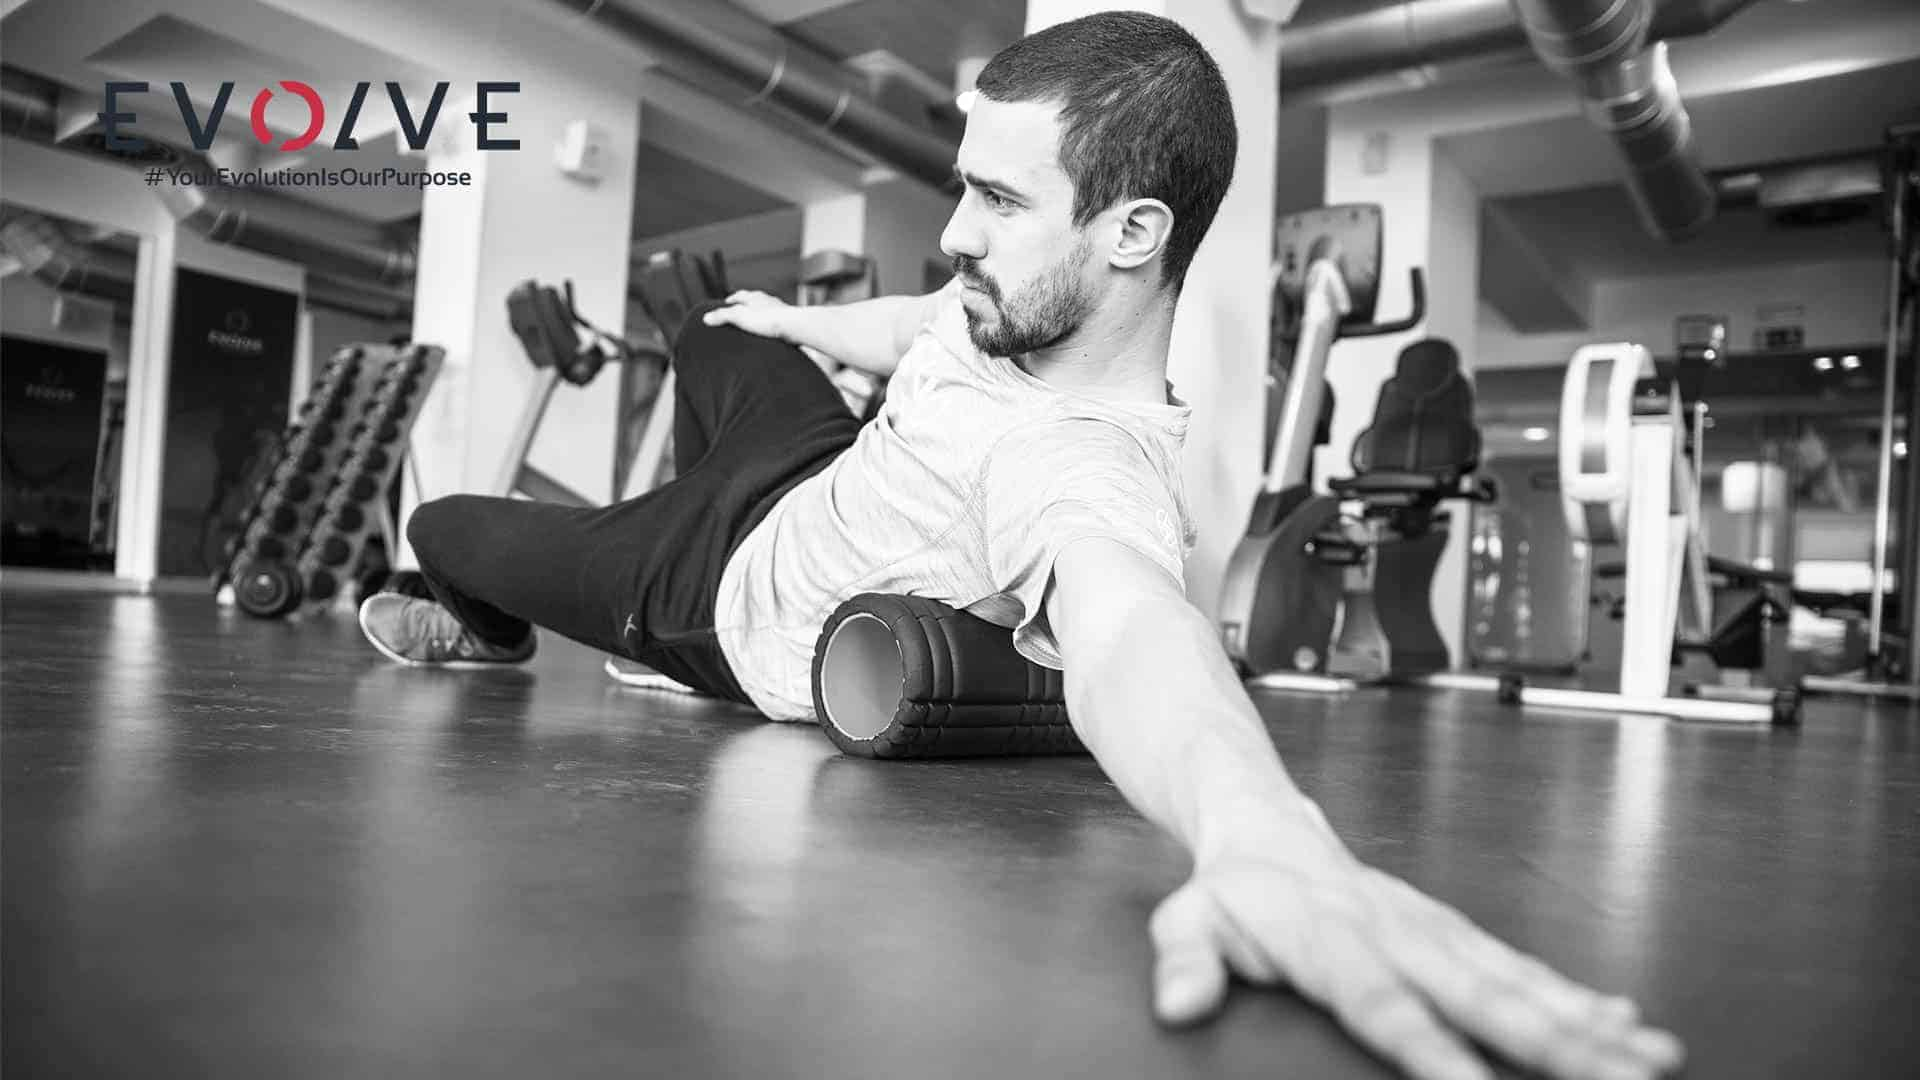 Evolve Fitness Concept